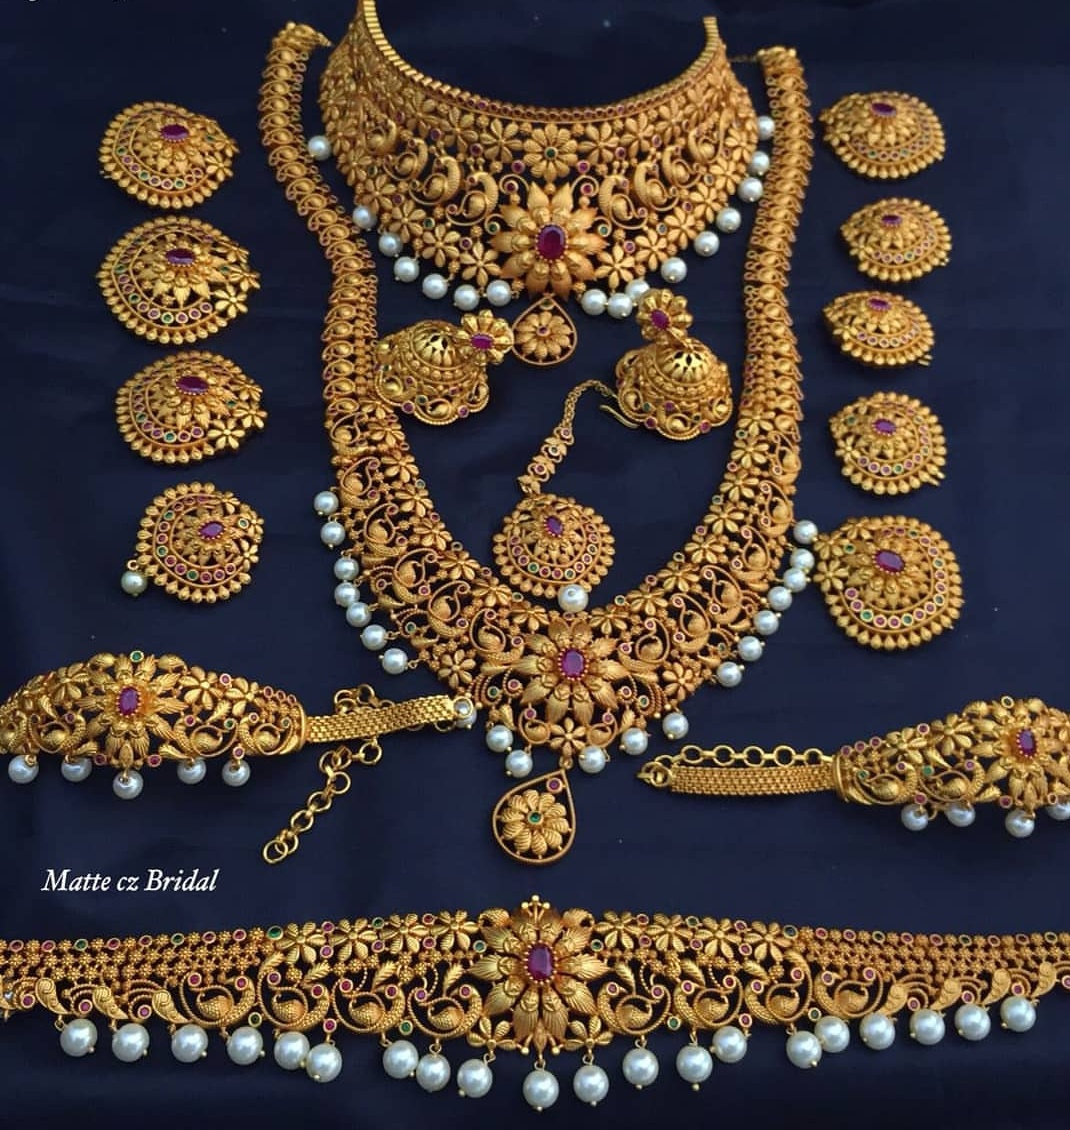 Matt finish imitation bridal set dhruvam